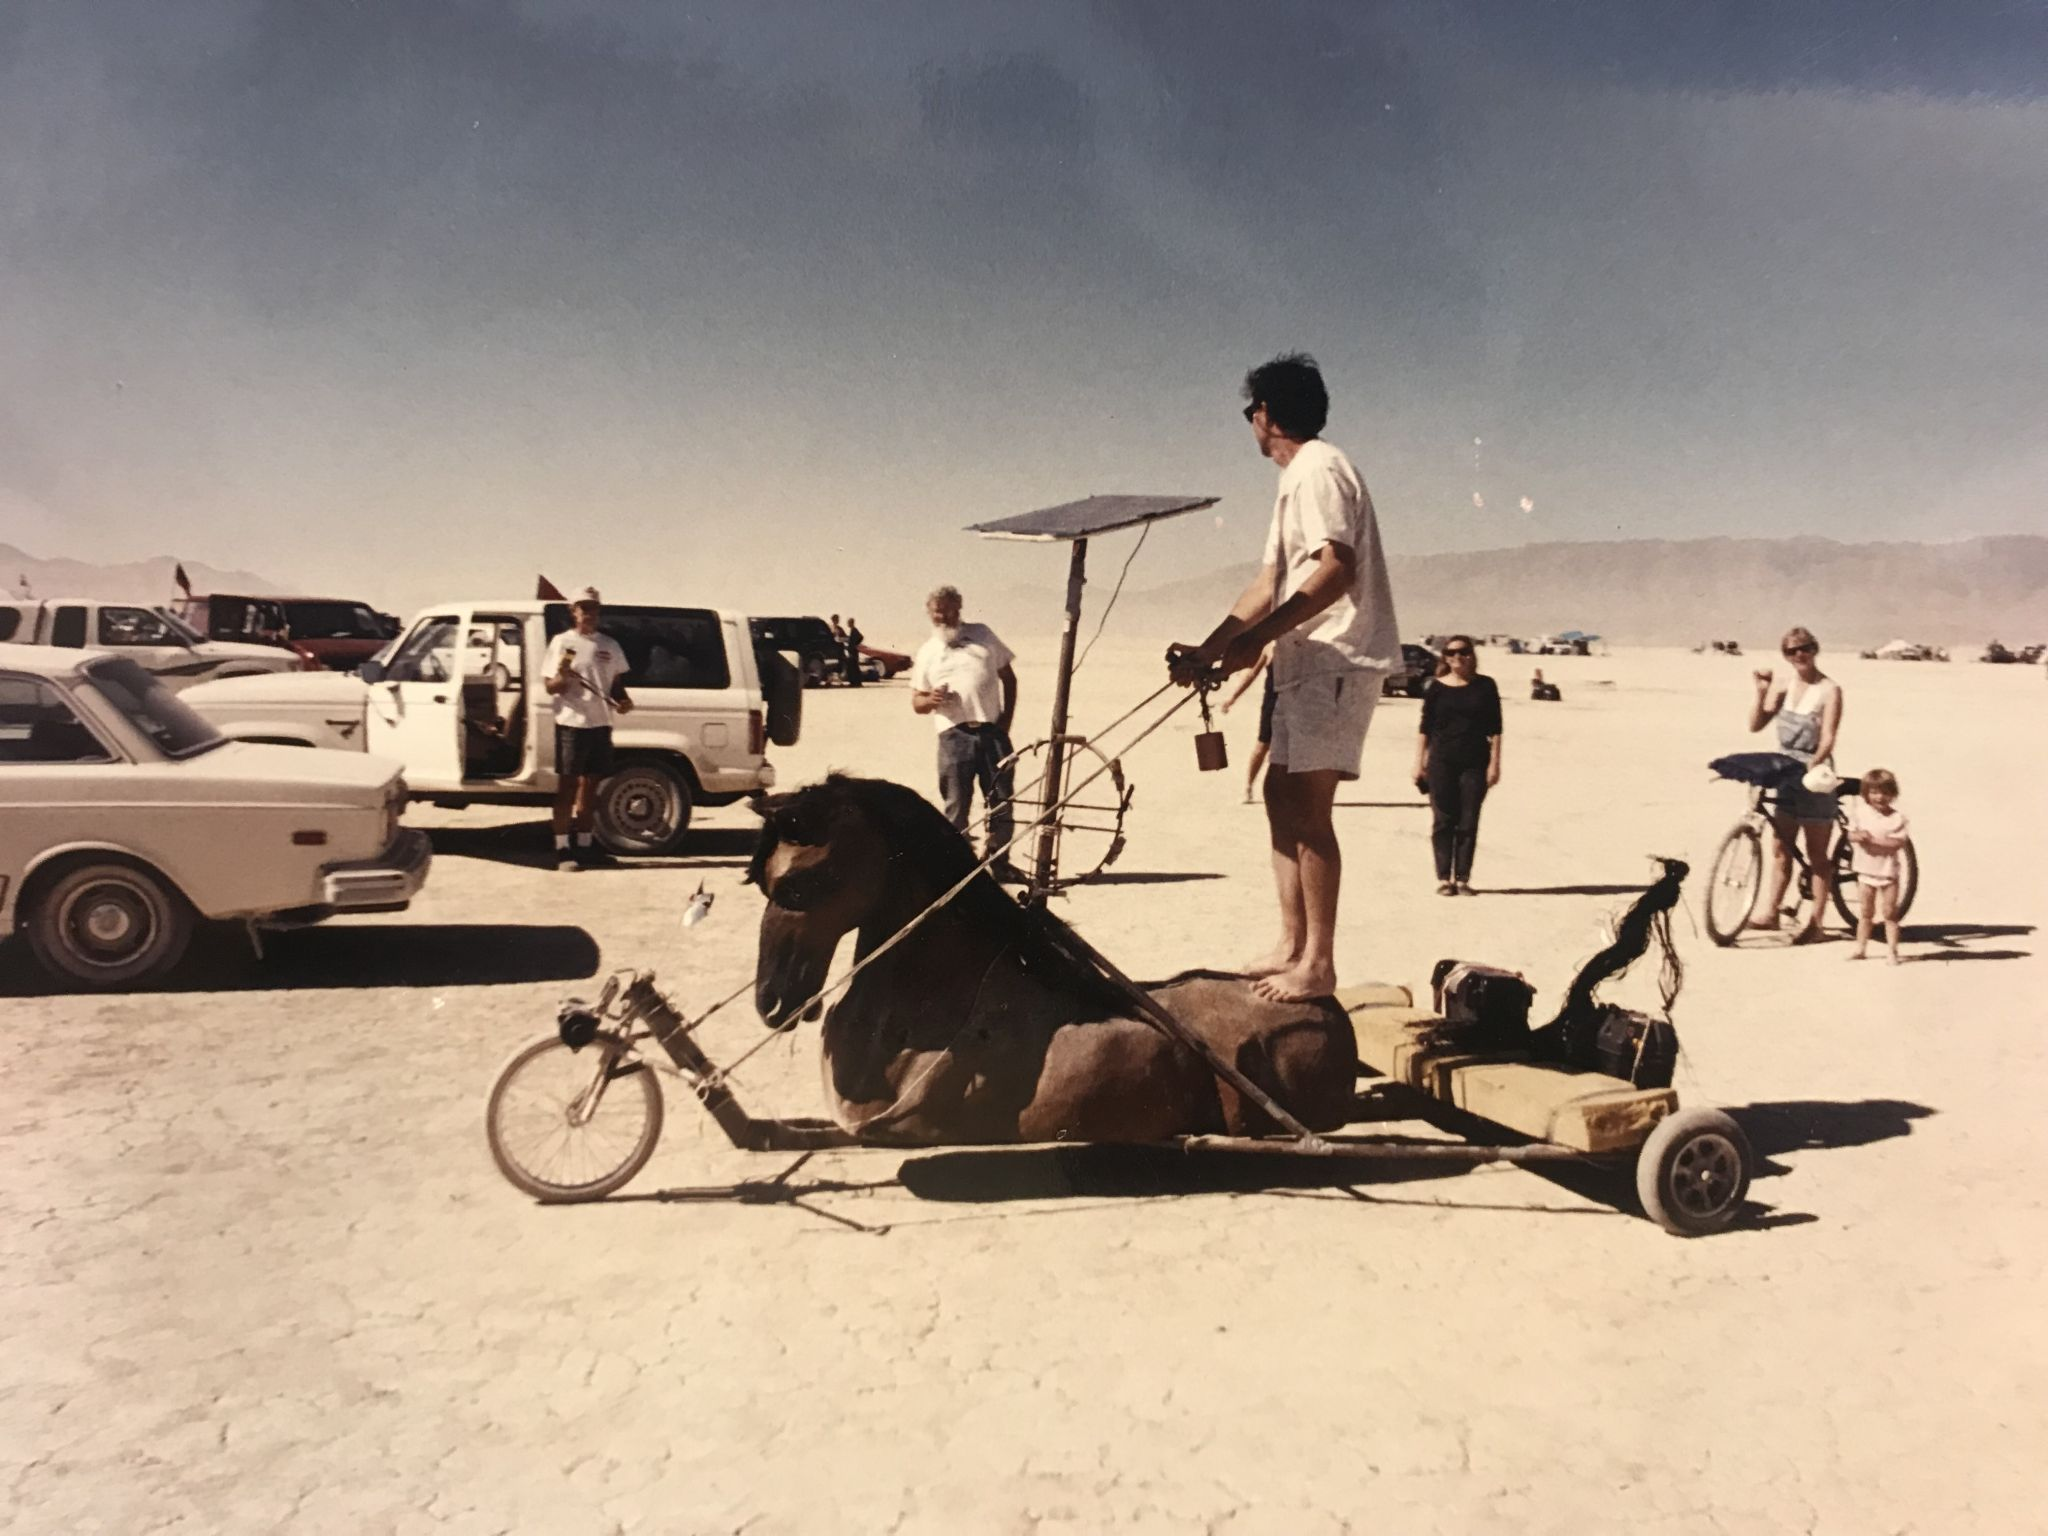 Burning Man has been ruined. But it was doomed from the beginning. - SFGate